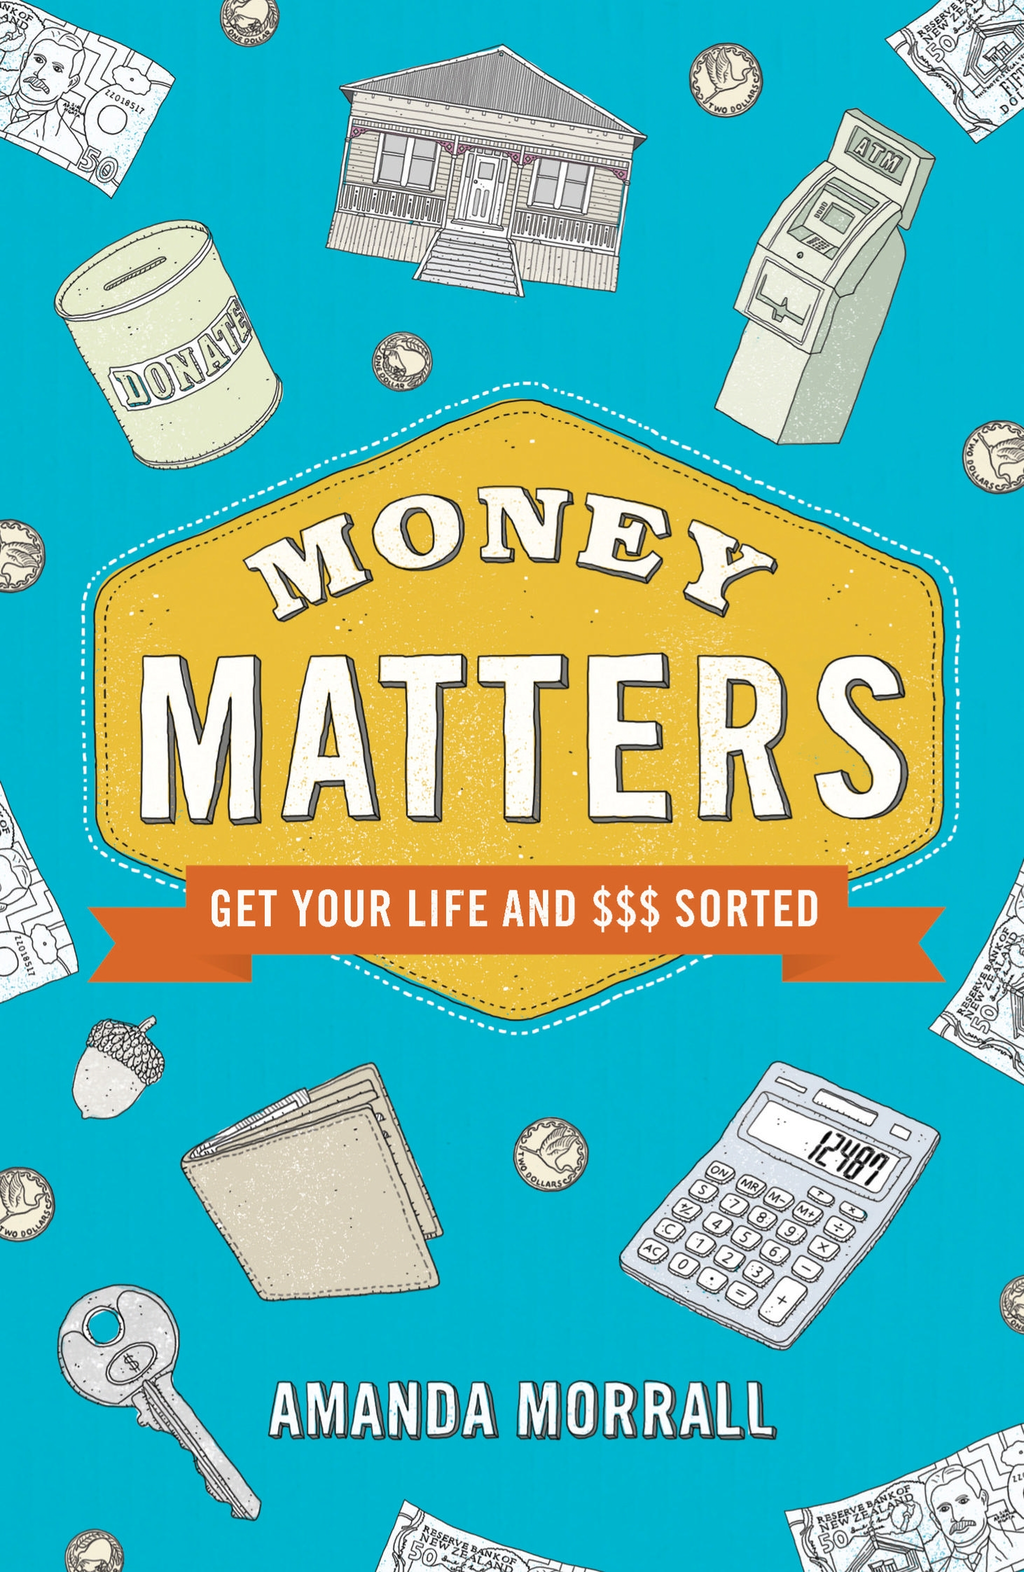 Money Matters Get Your Life and $$$ Sorted